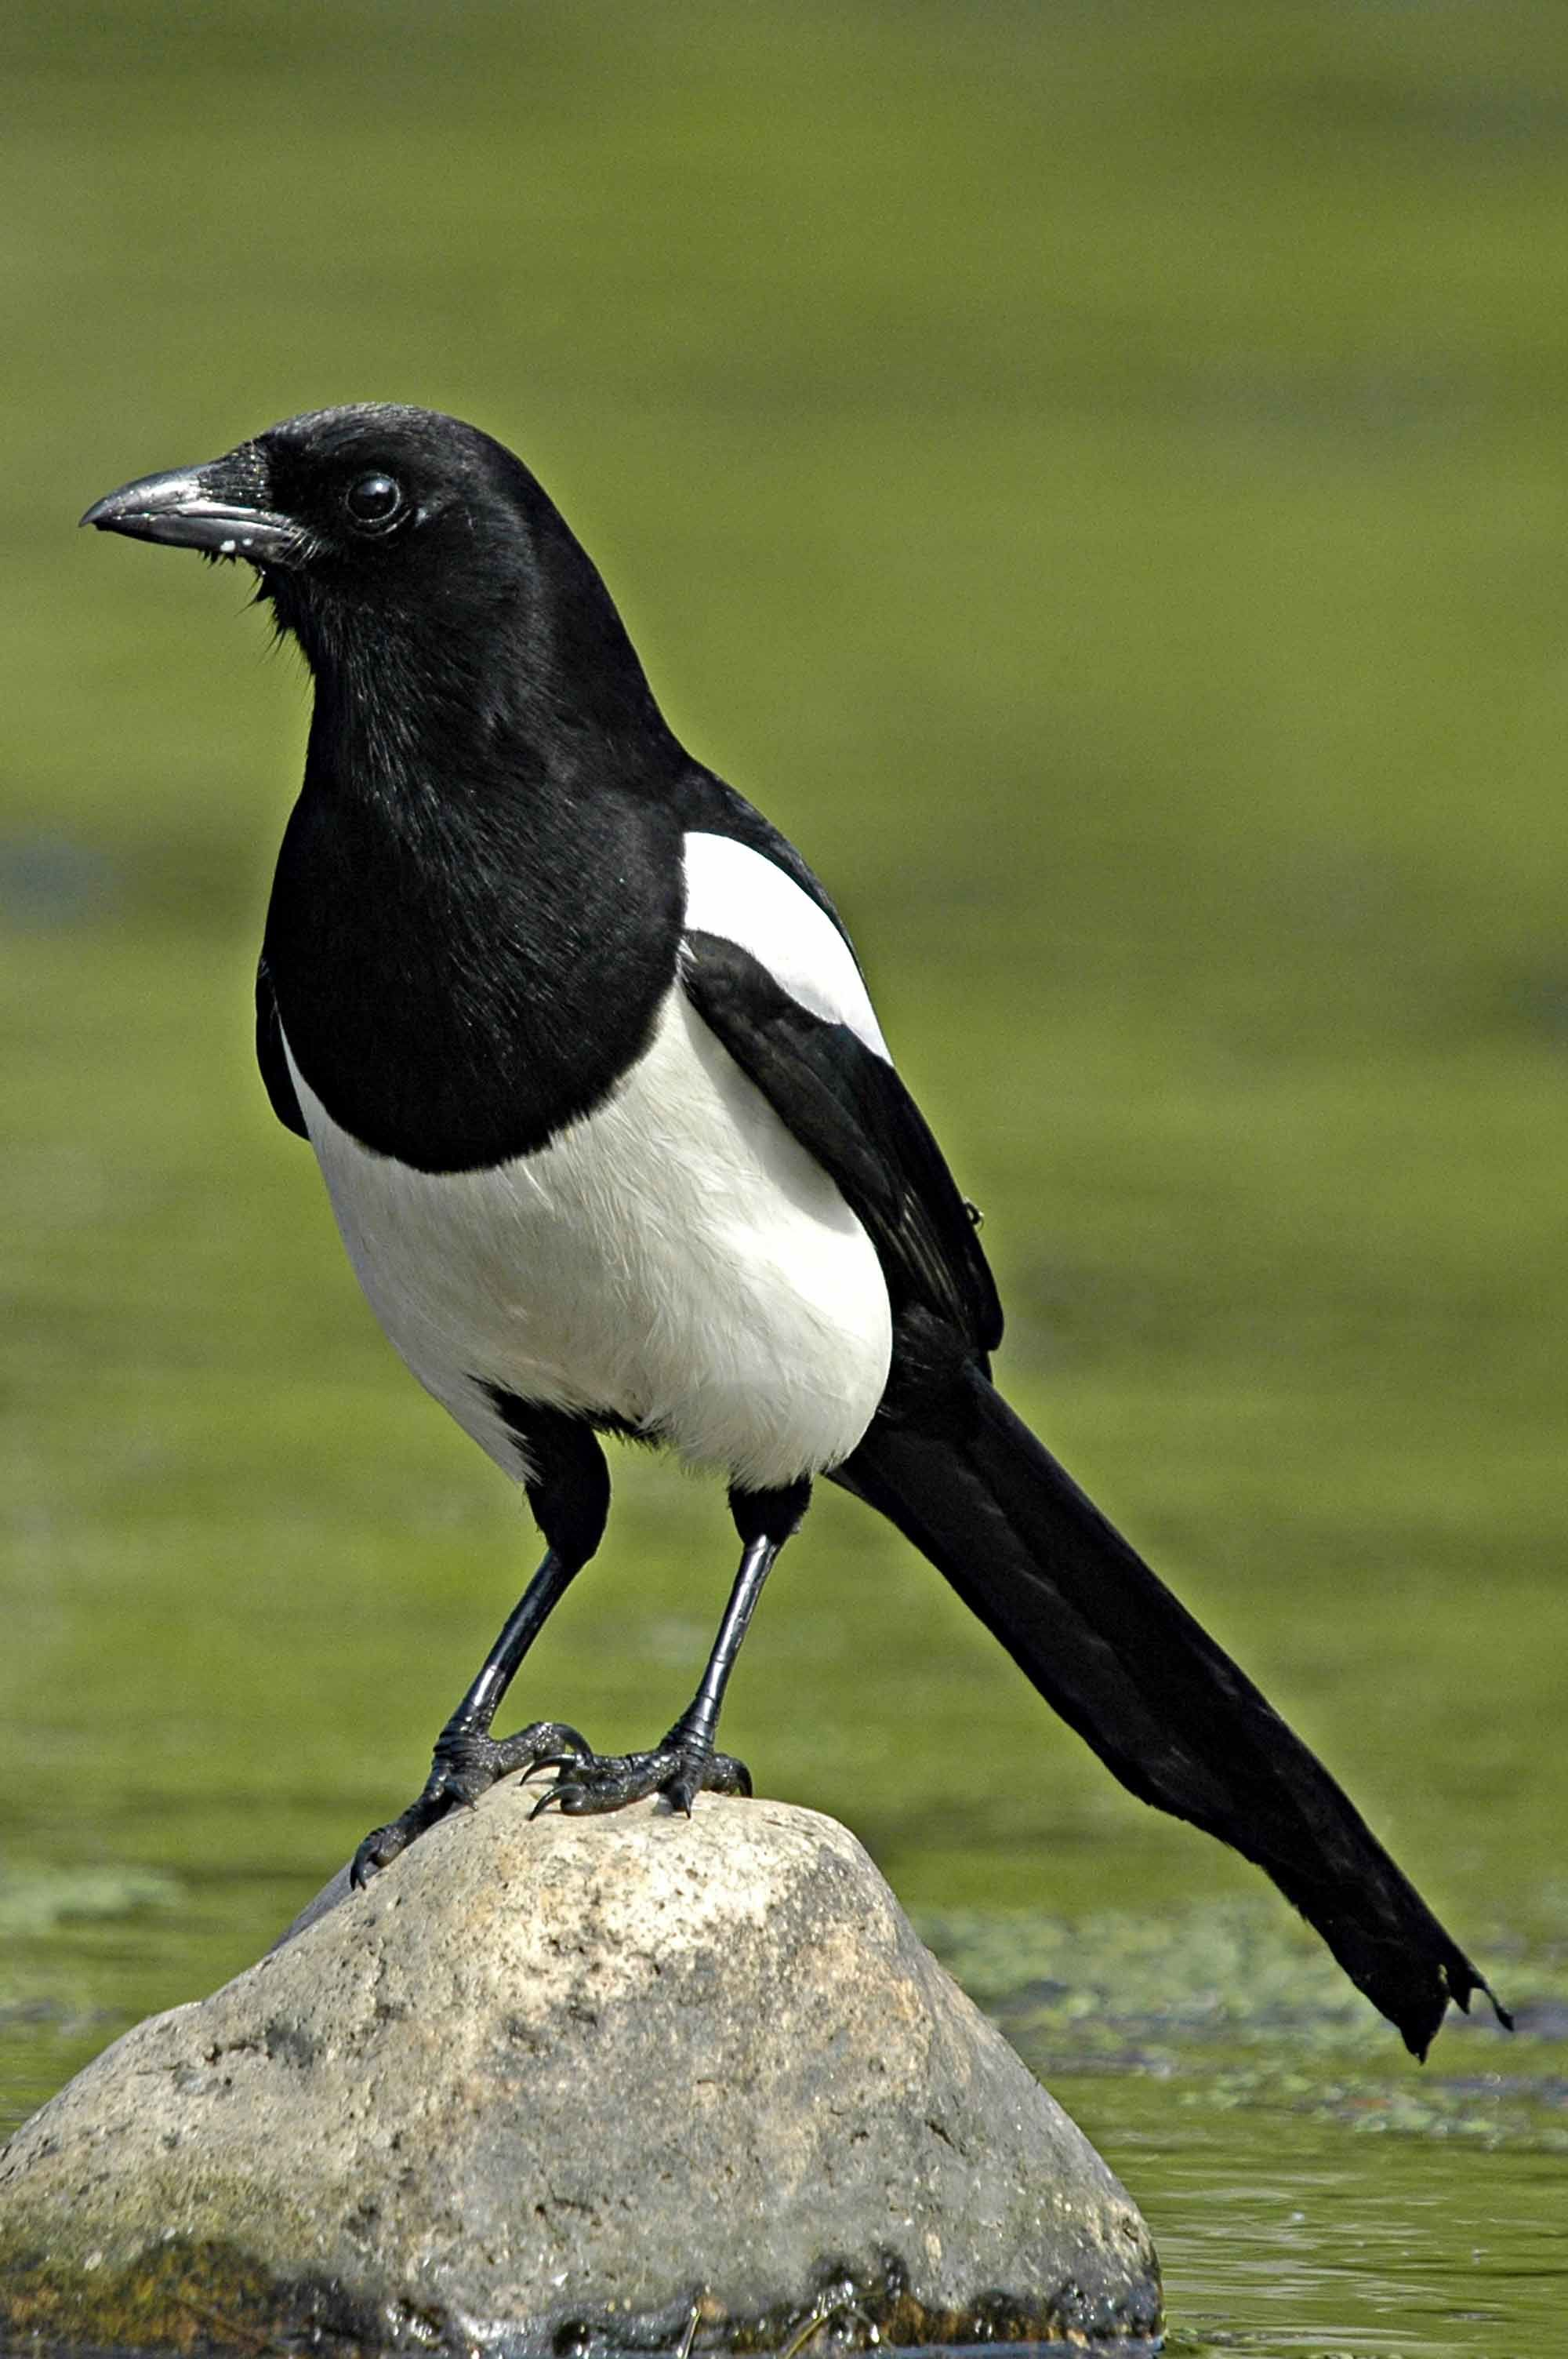 Magpie Birds In Backyards black billed magpie which i used for tracing in order to gain a